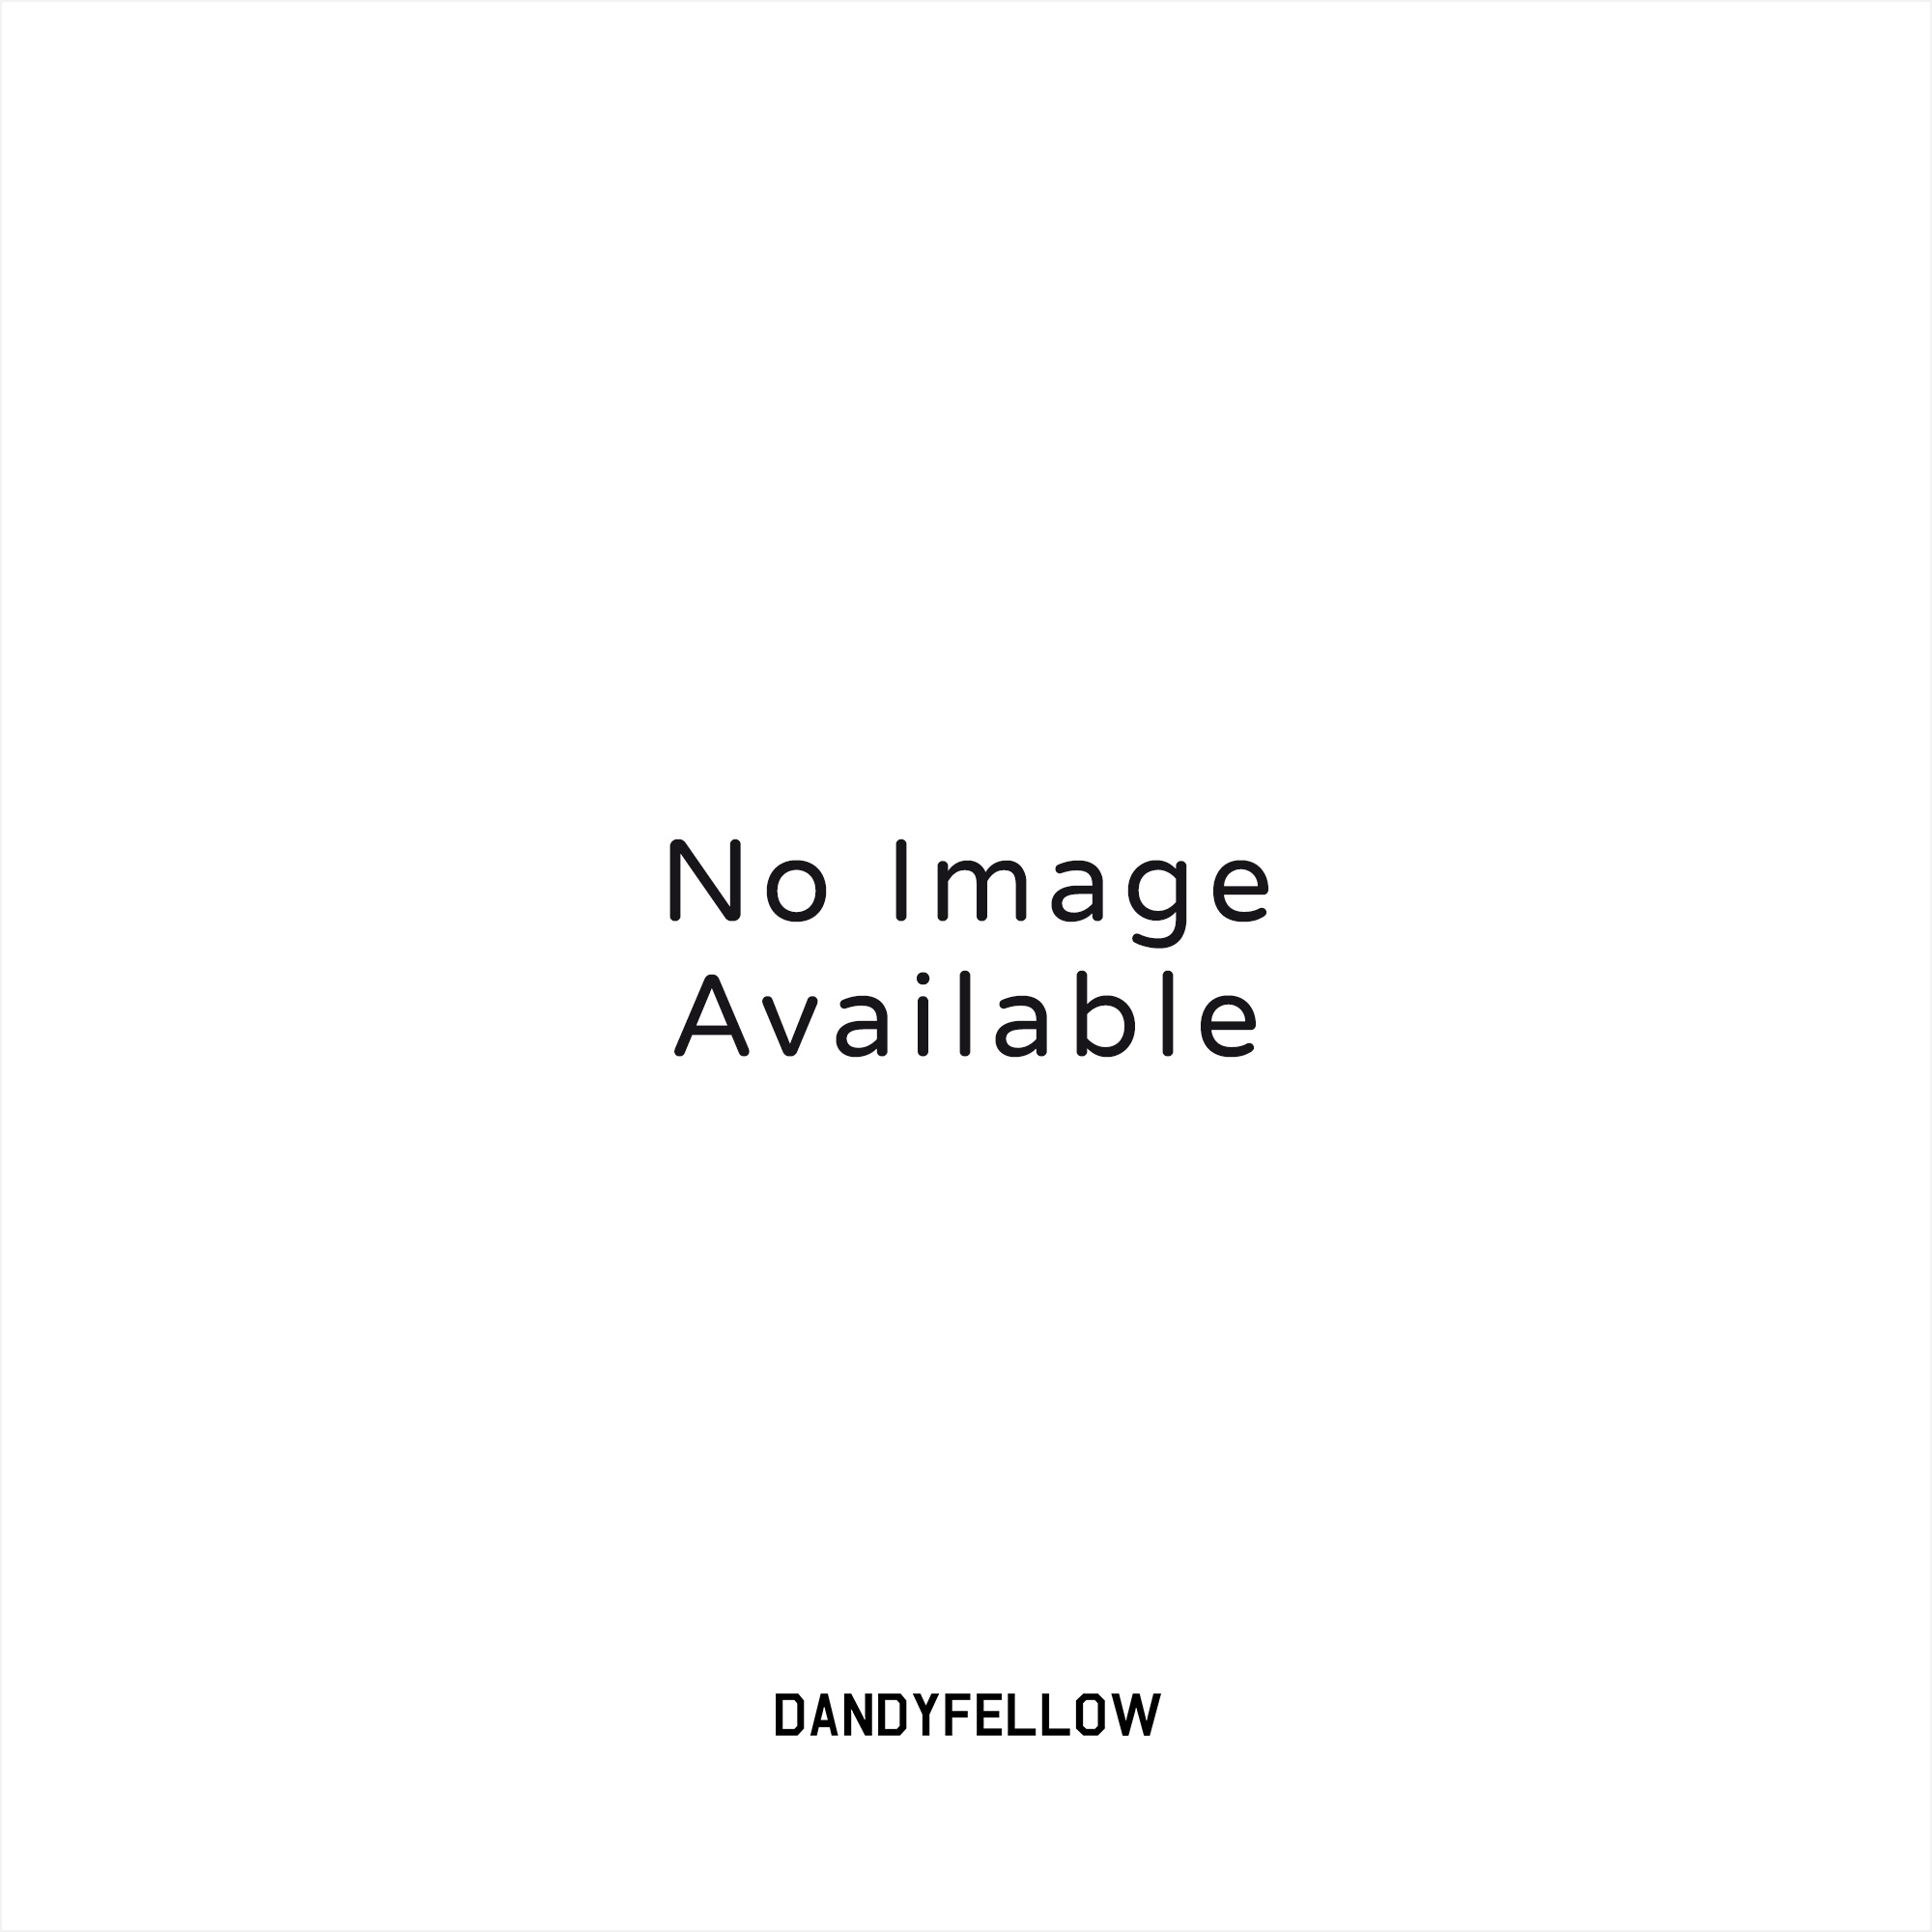 9f0736014fe Nike Air VaporMax Plus blue and white side